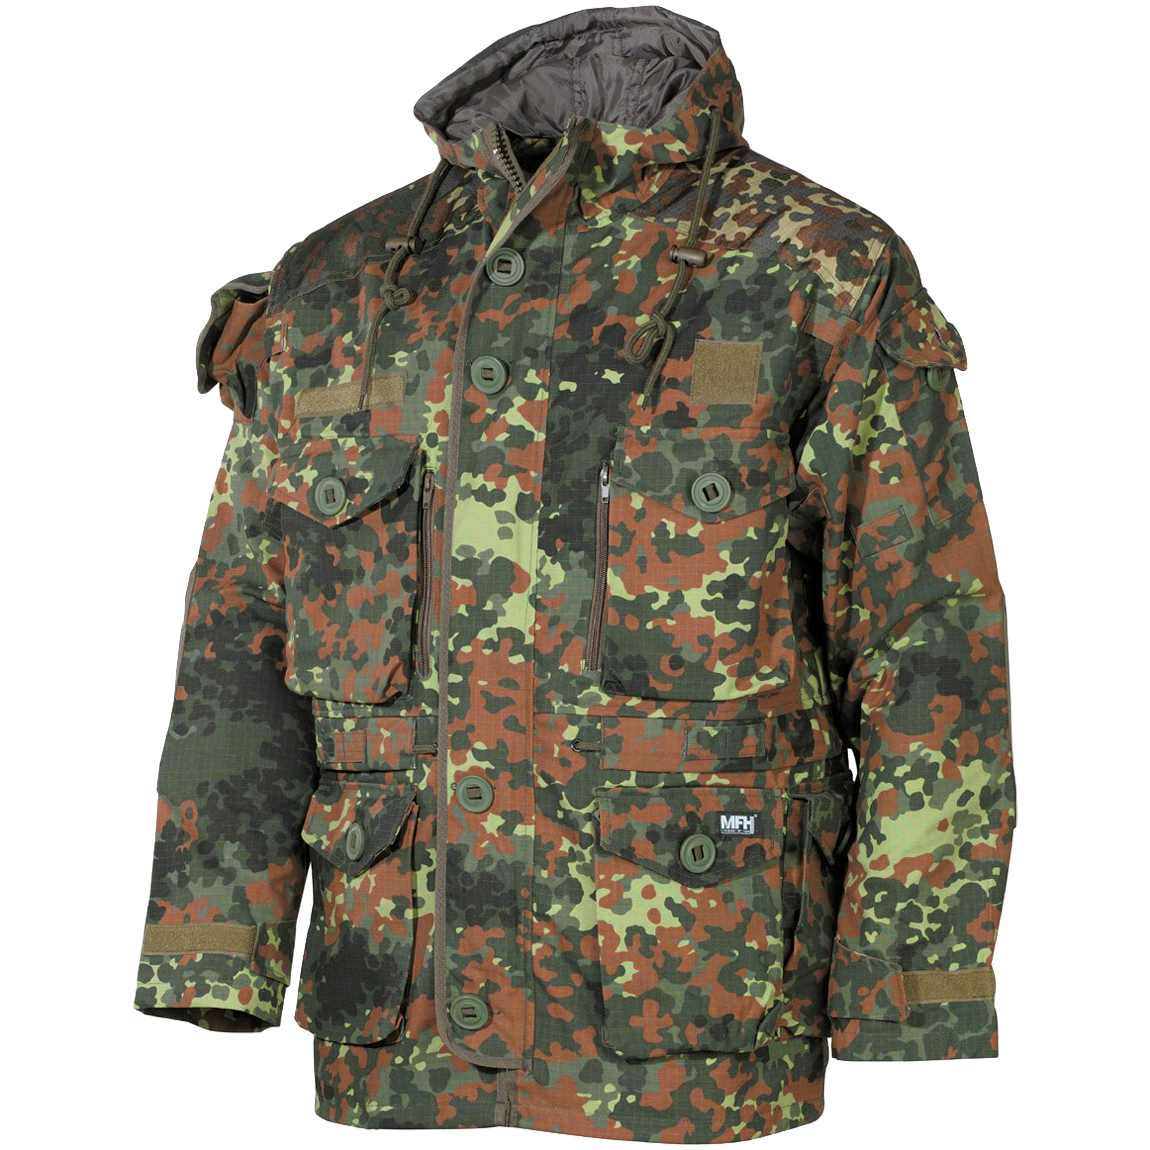 Mfh Commando Jacket Smock Flecktarn Parka Military 1st